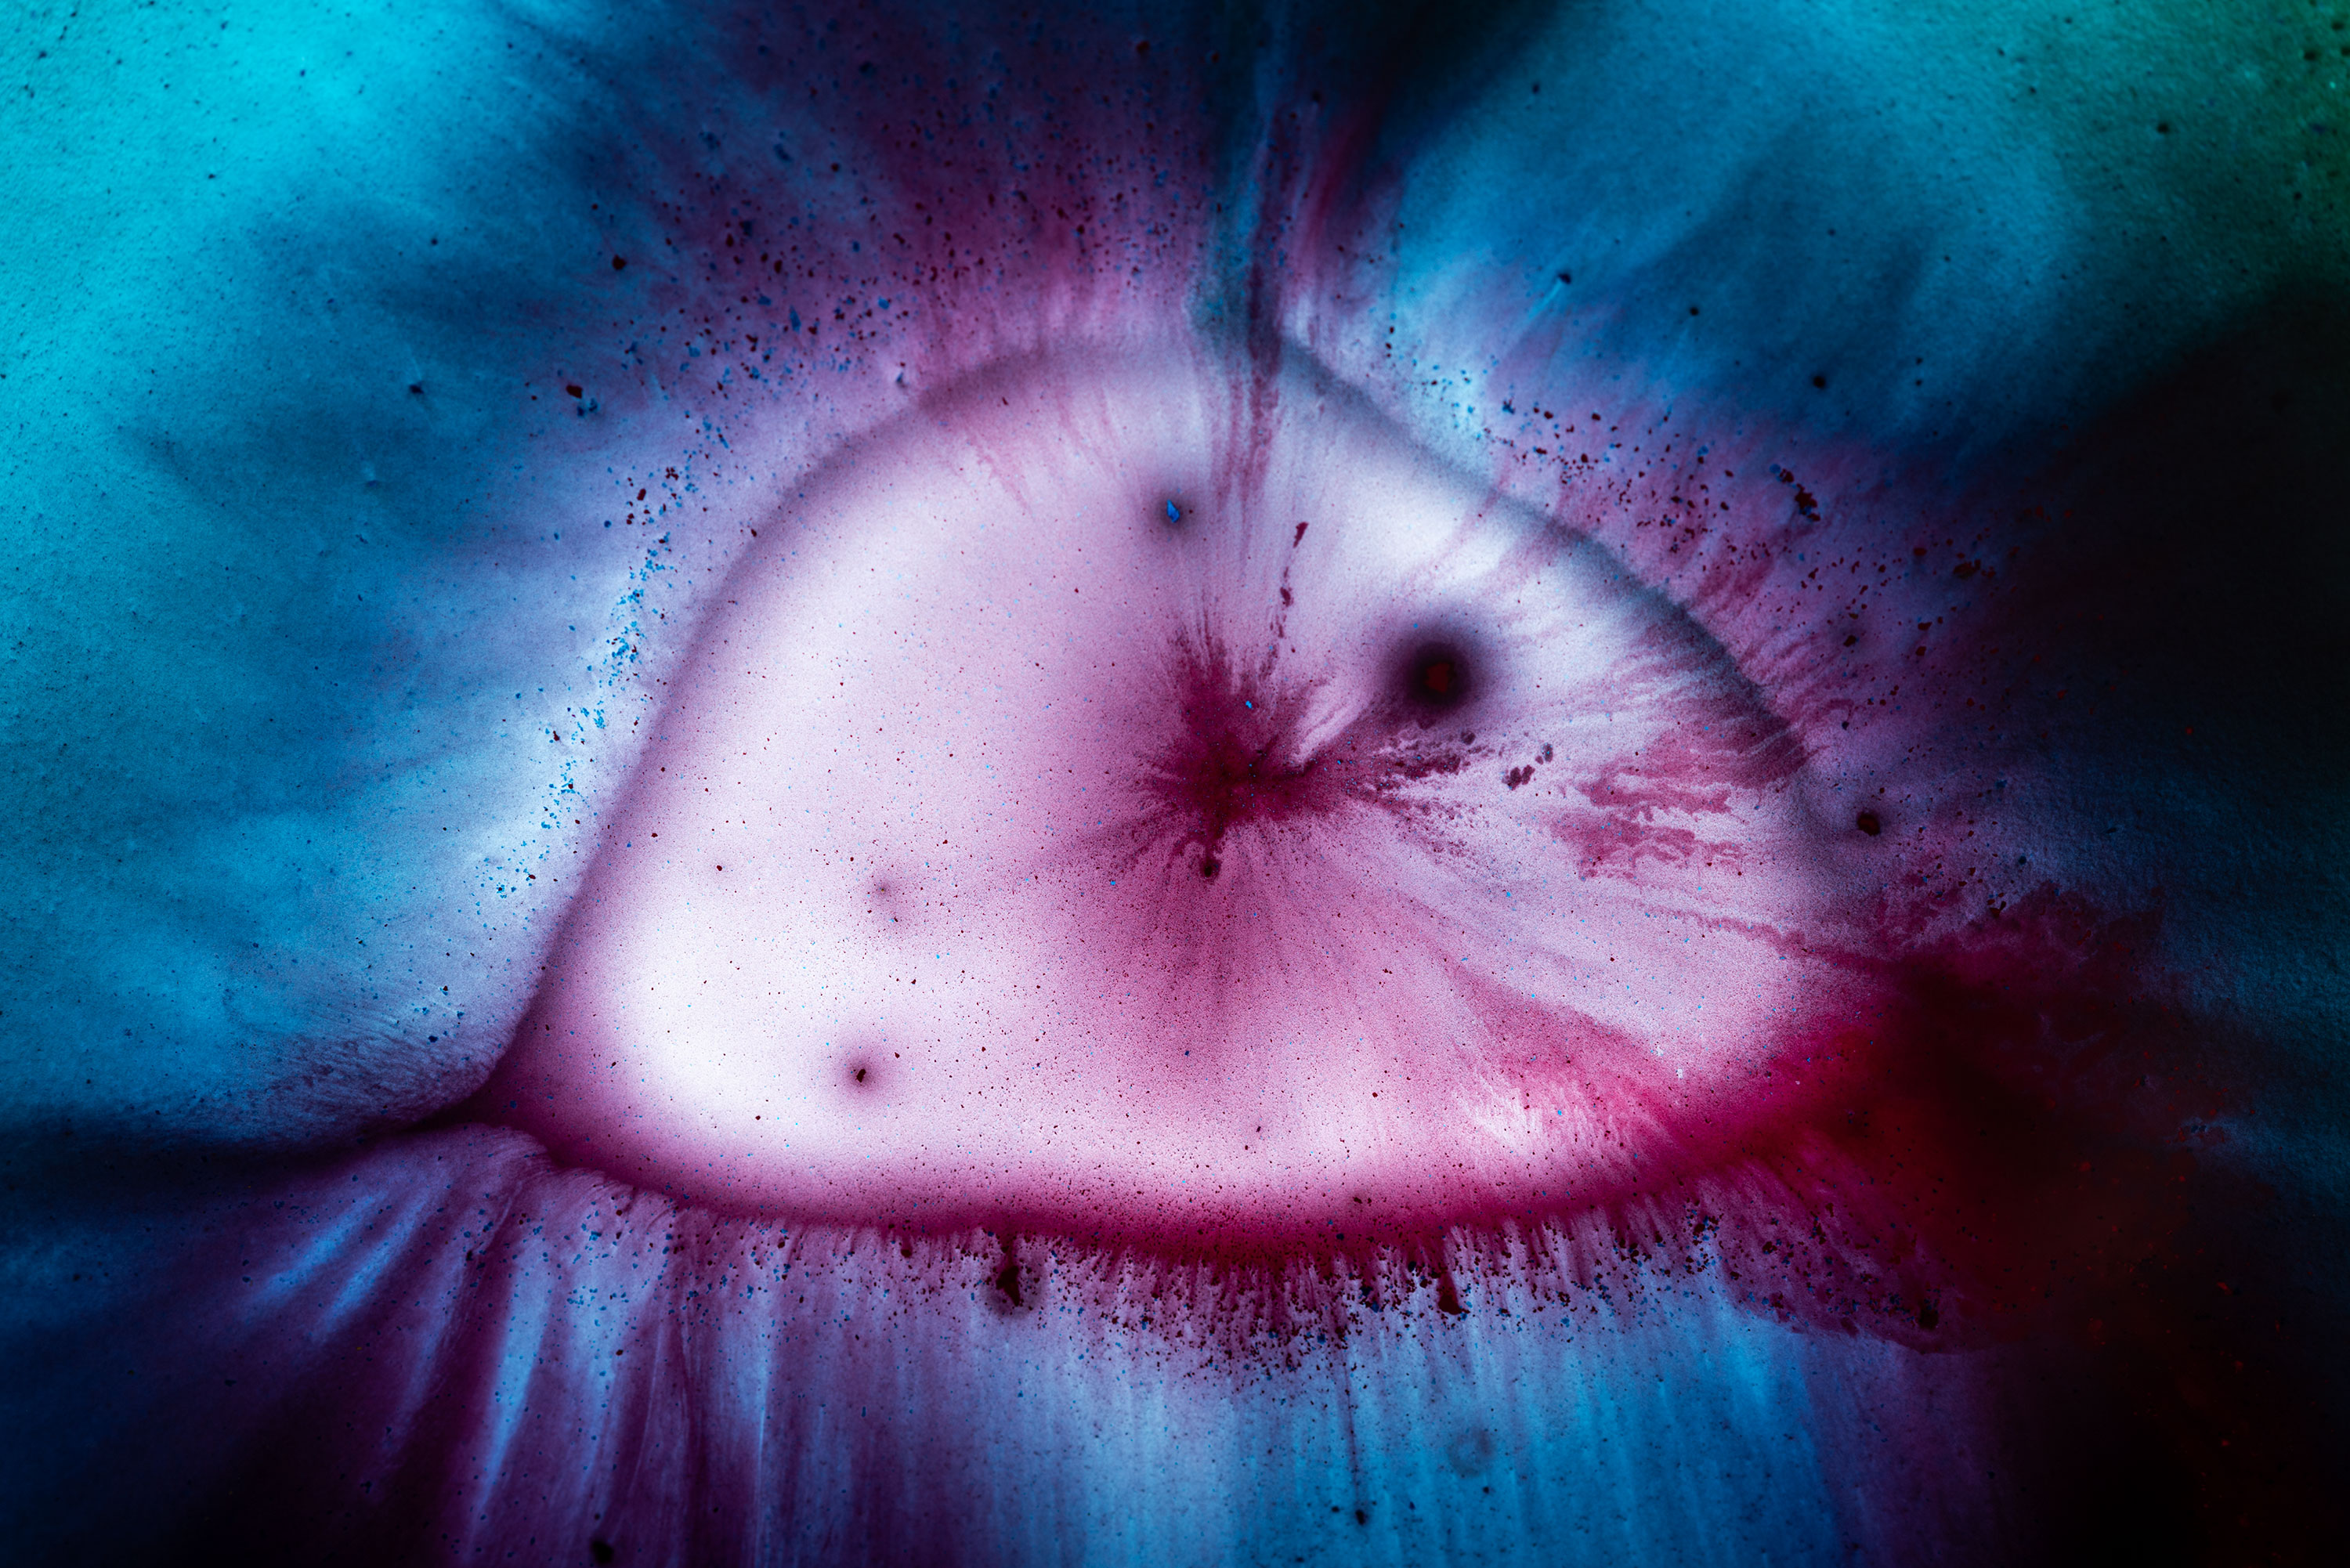 Cyan and magenta watercolor close-up photography creating a landscape looking like an island ©Jennifer Esseiva